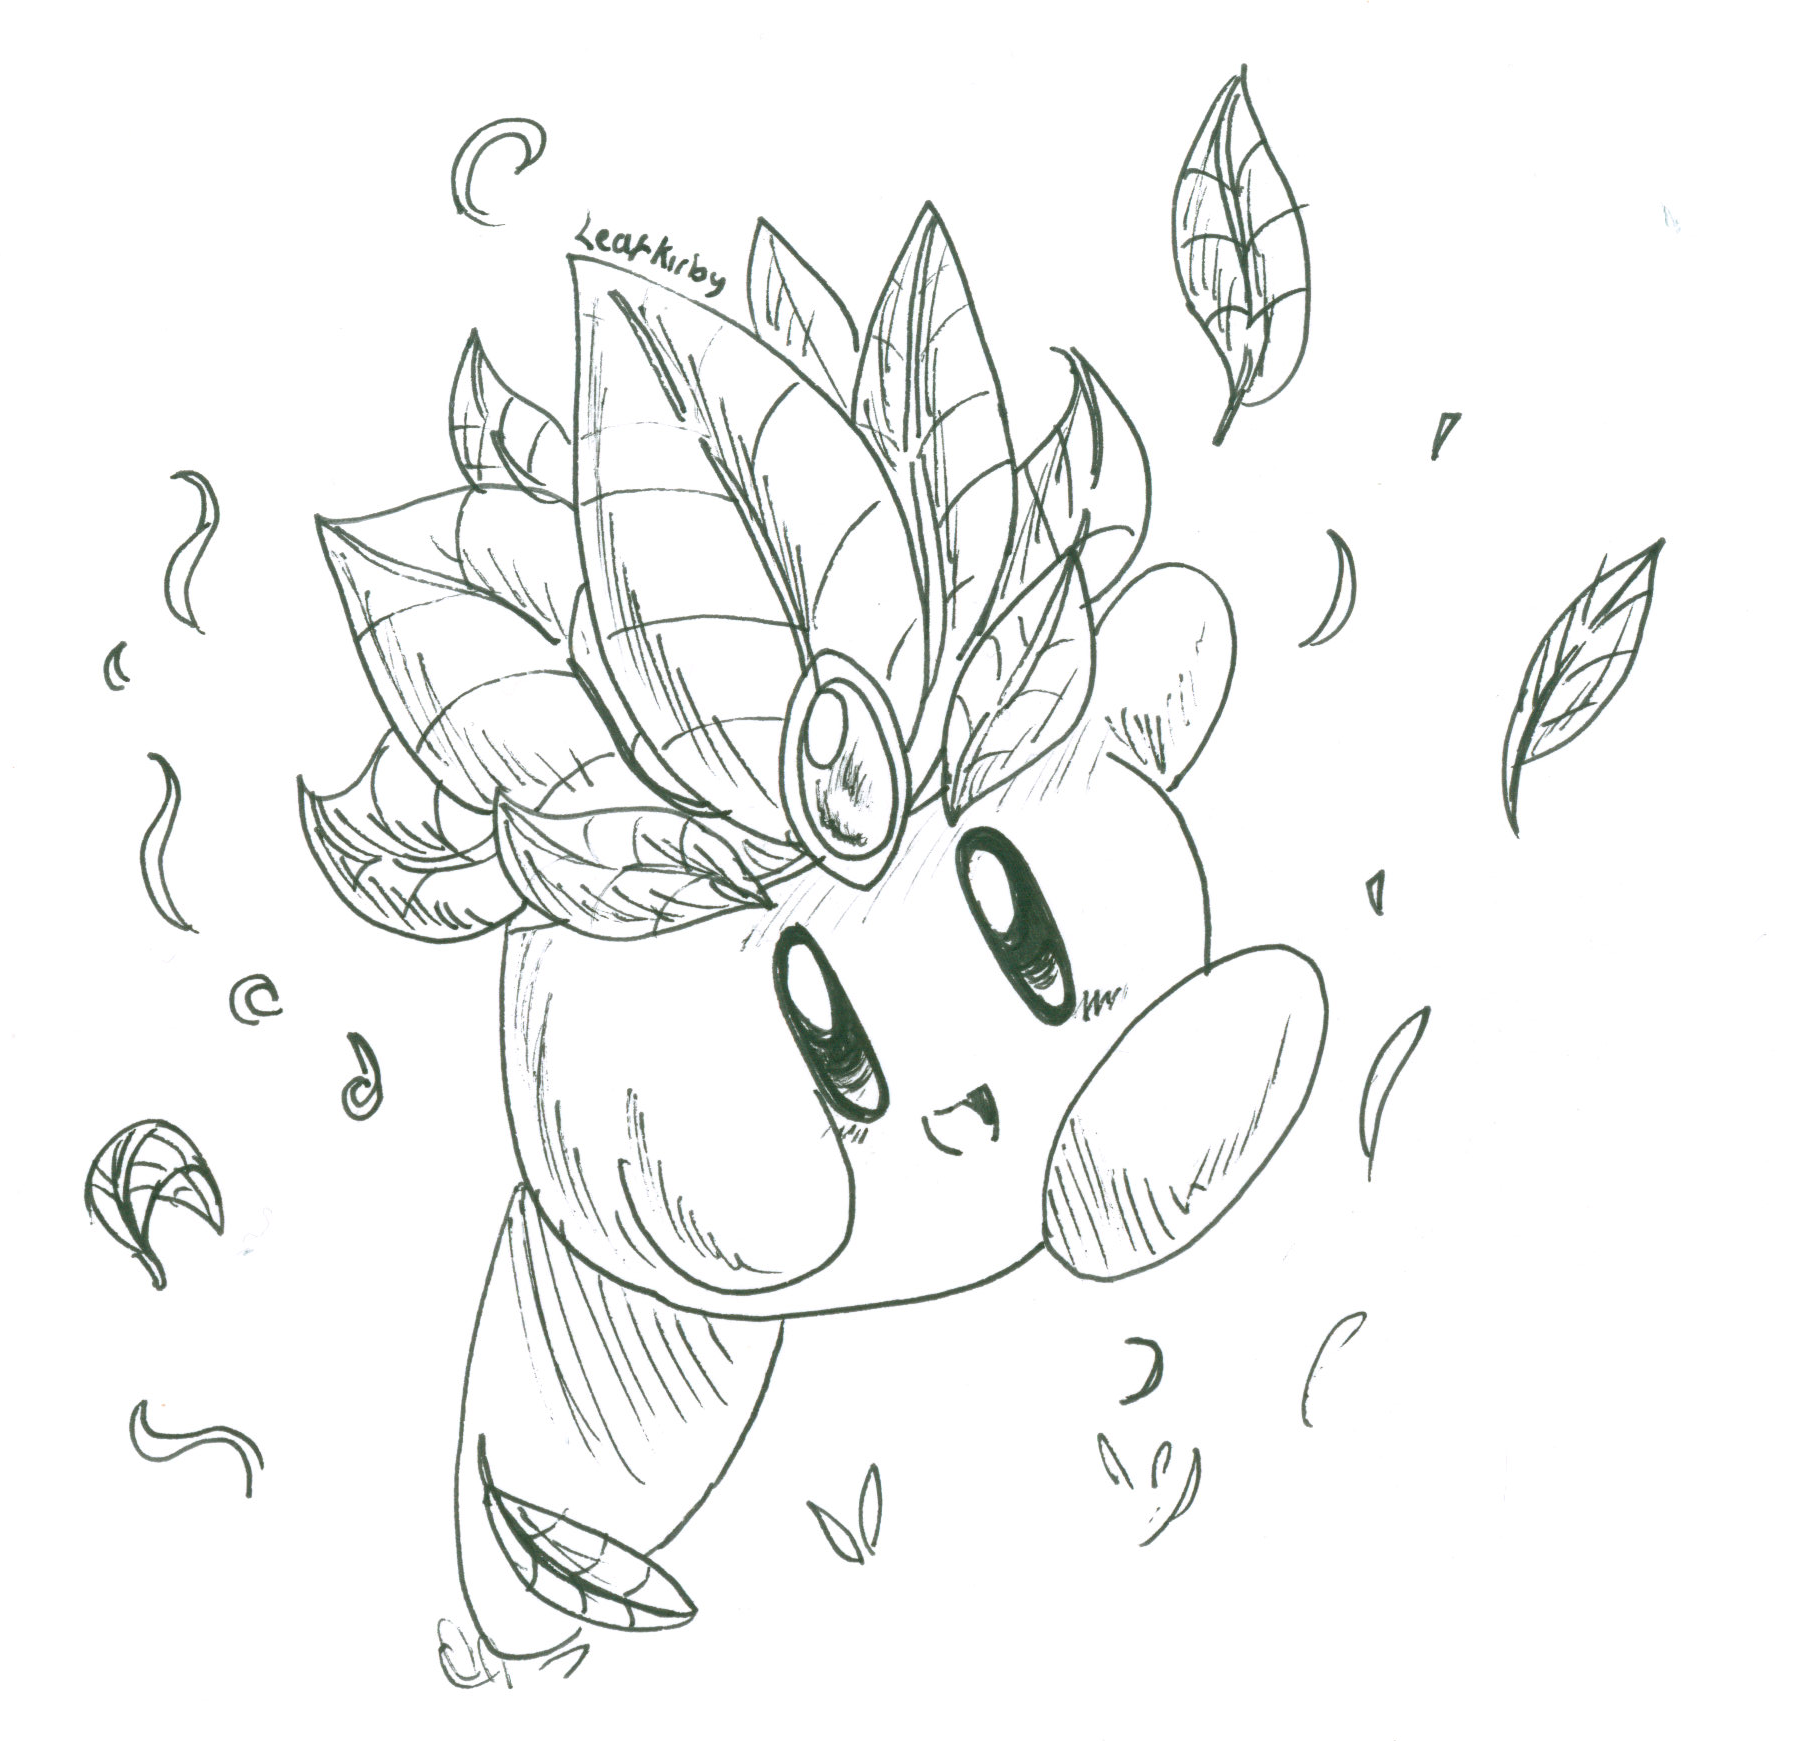 Coloring pages kirby - Leaf Kirby By Crashkirby888 Leaf Kirby By Crashkirby888